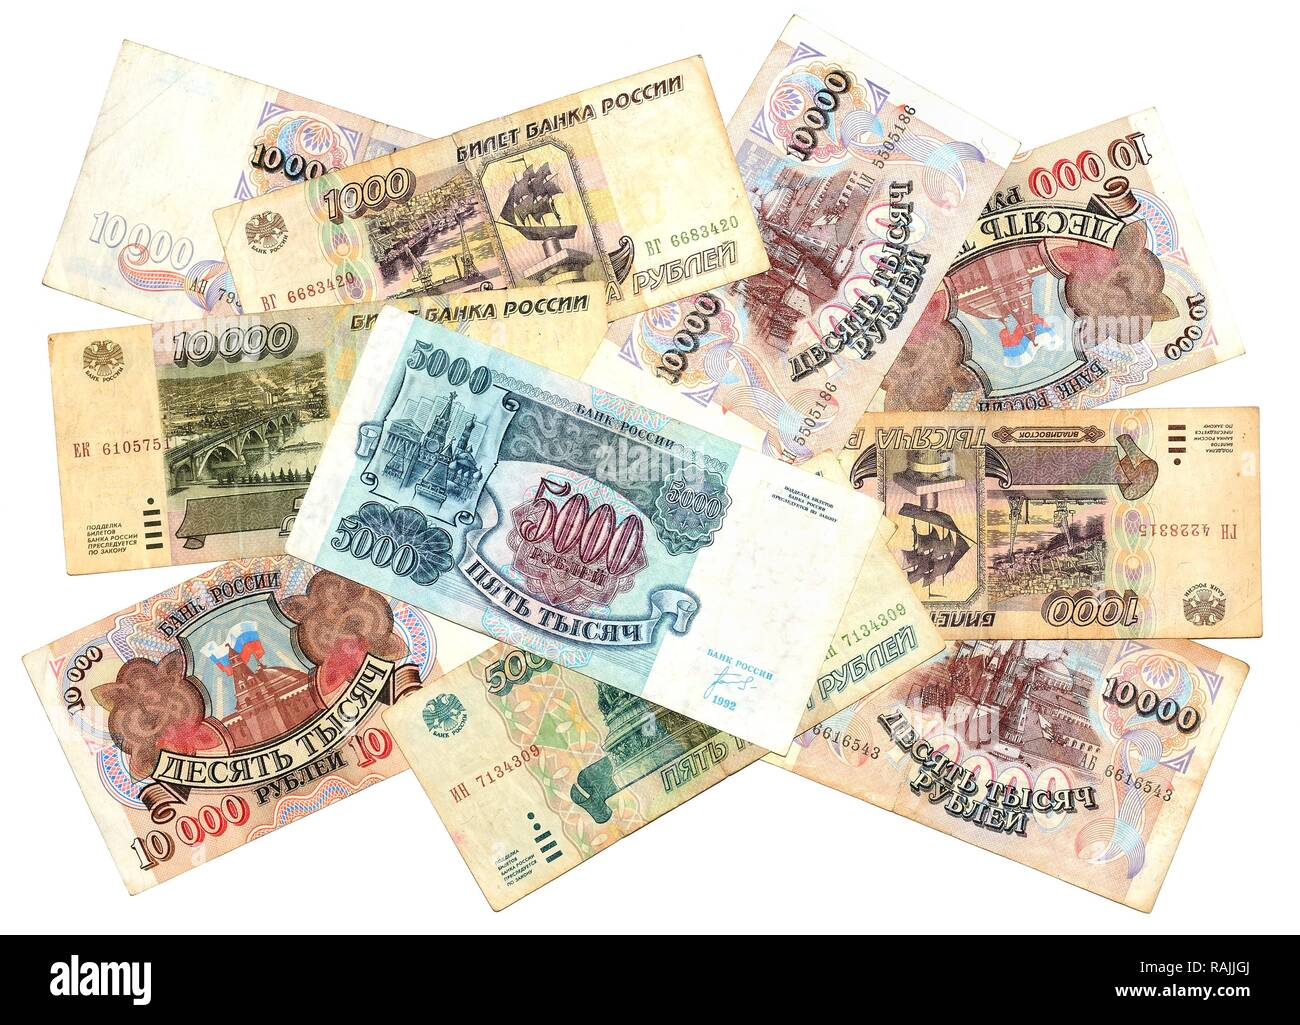 Historic banknotes, Russian rubles, 1992 - 1995 - Stock Image